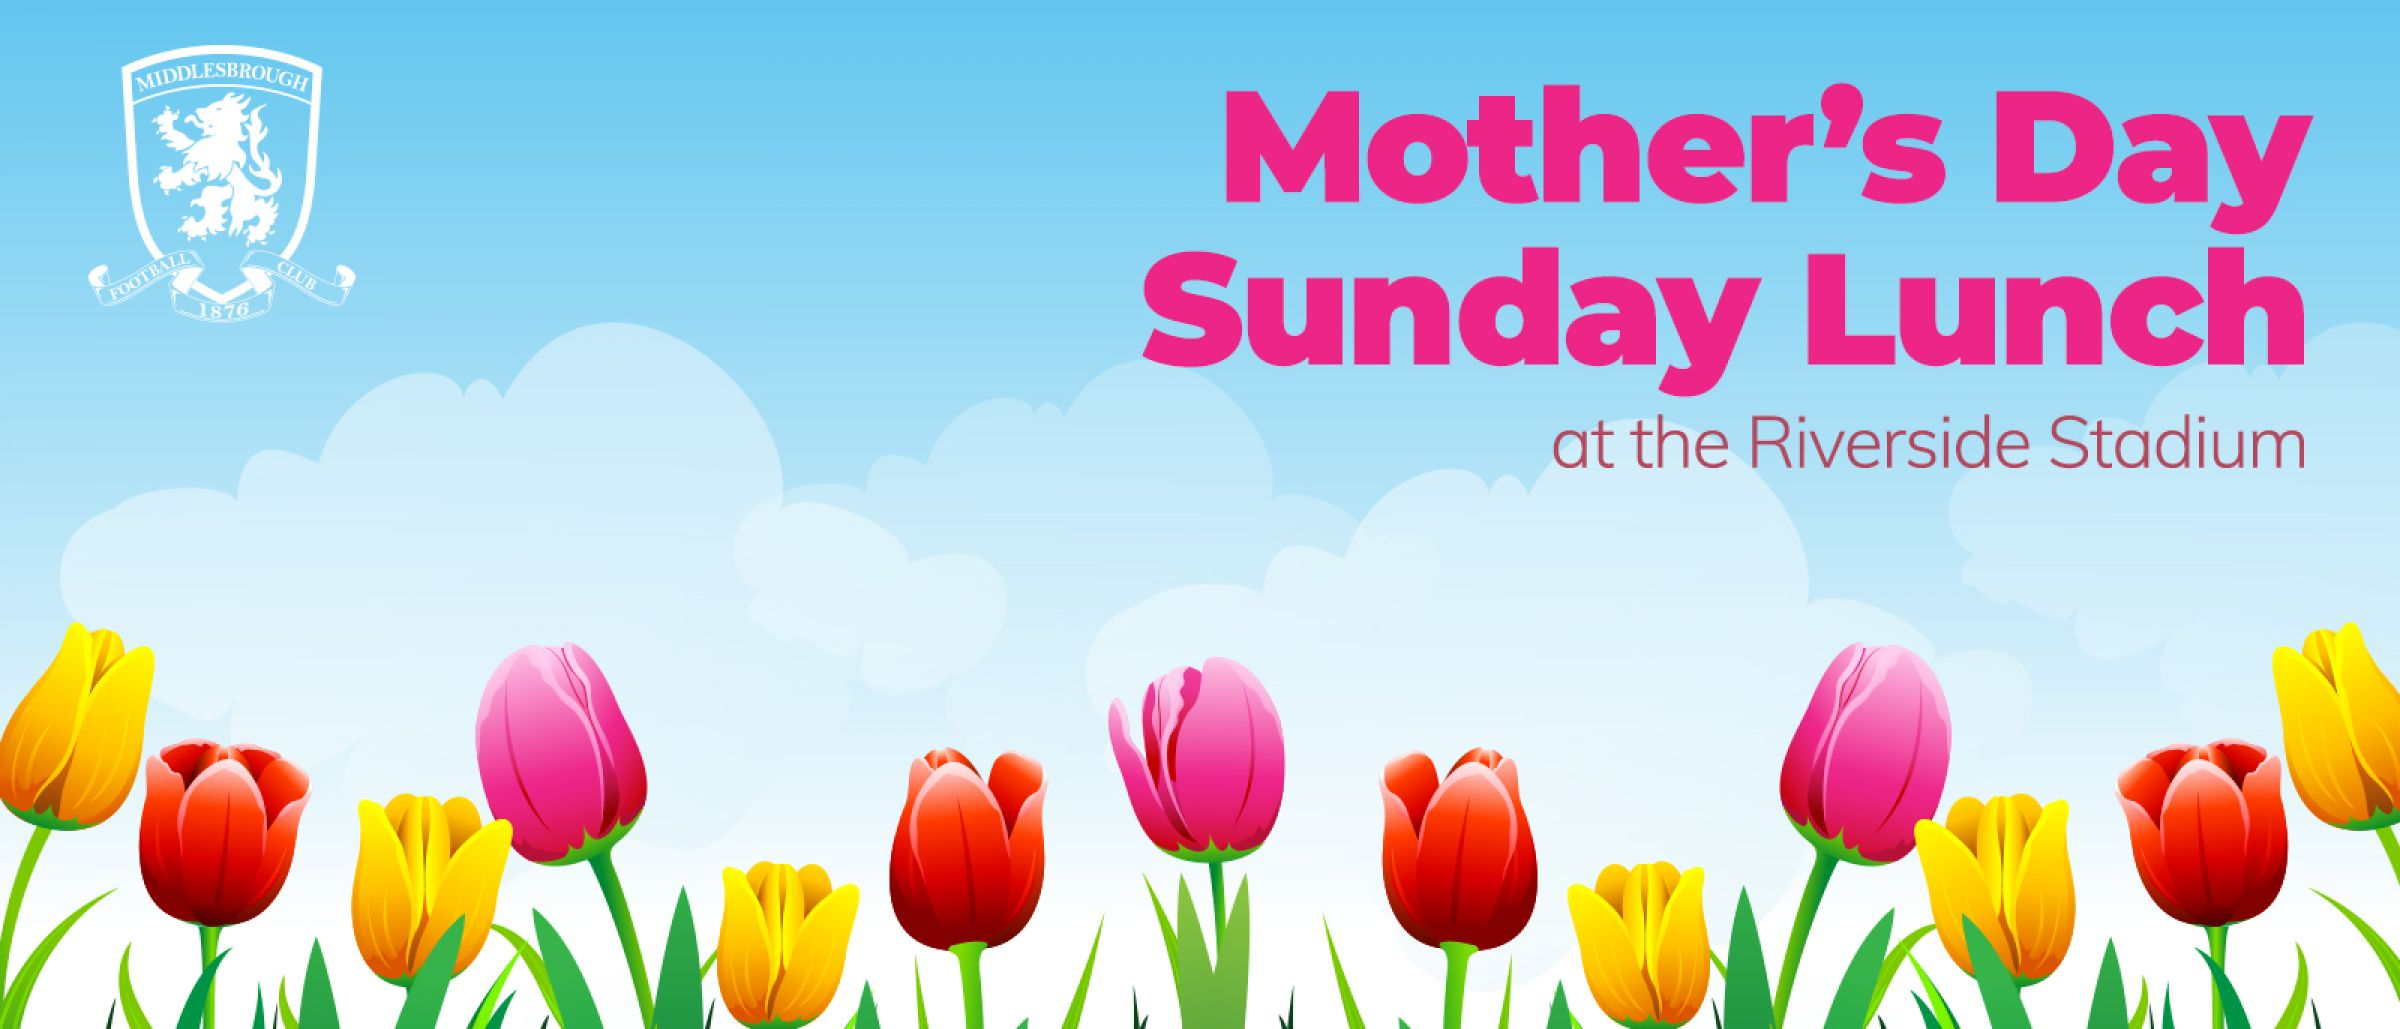 Mother's Day Sunday Lunch at the Riverside